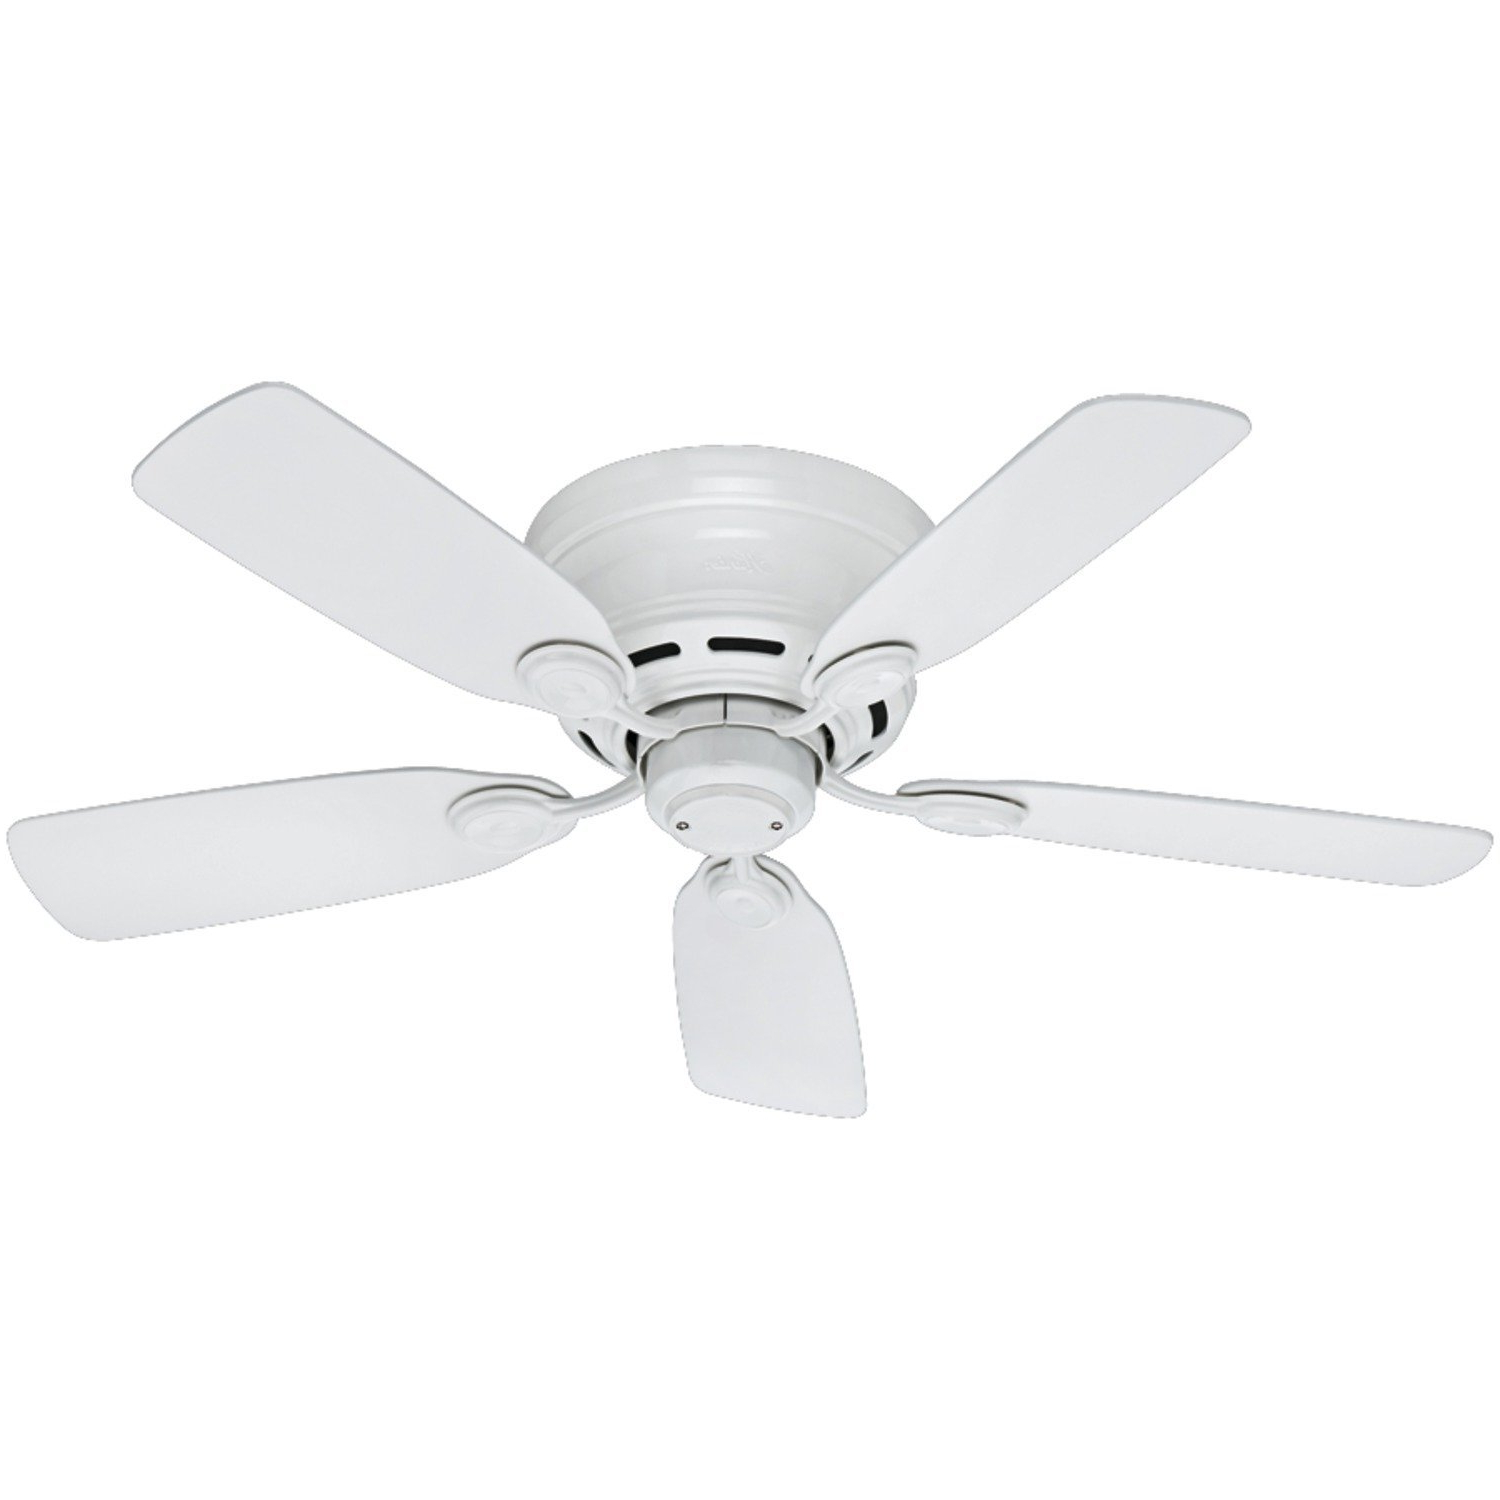 Conroy 5 Blade Ceiling Fans Intended For Popular Top 10 Best Ceiling Fans Reviews – Top Best Pro Review (View 20 of 20)